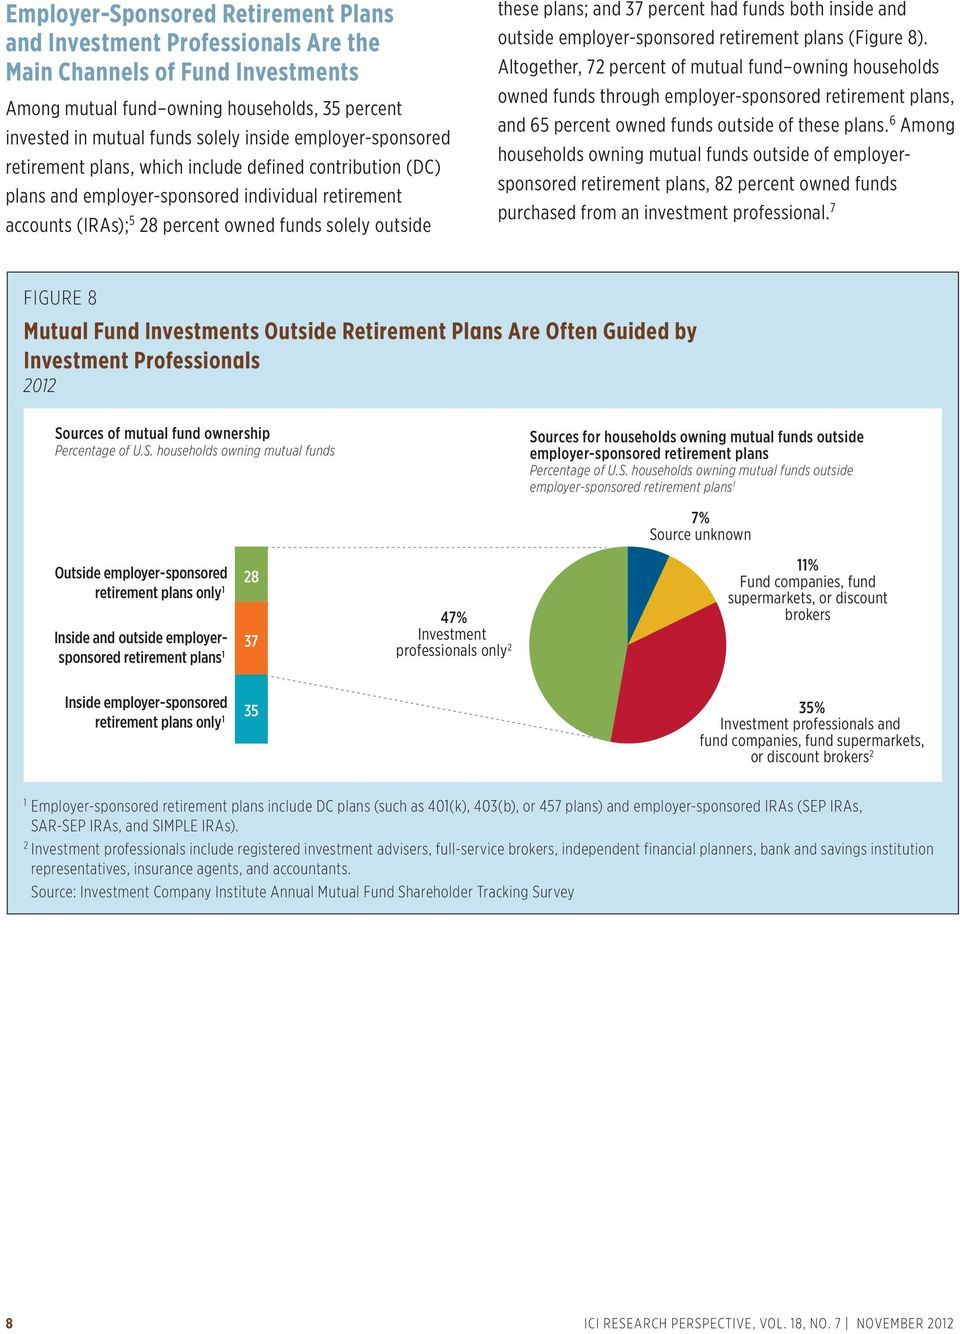 and 37 percent had funds both inside and outside employer-sponsored retirement plans (Figure 8).